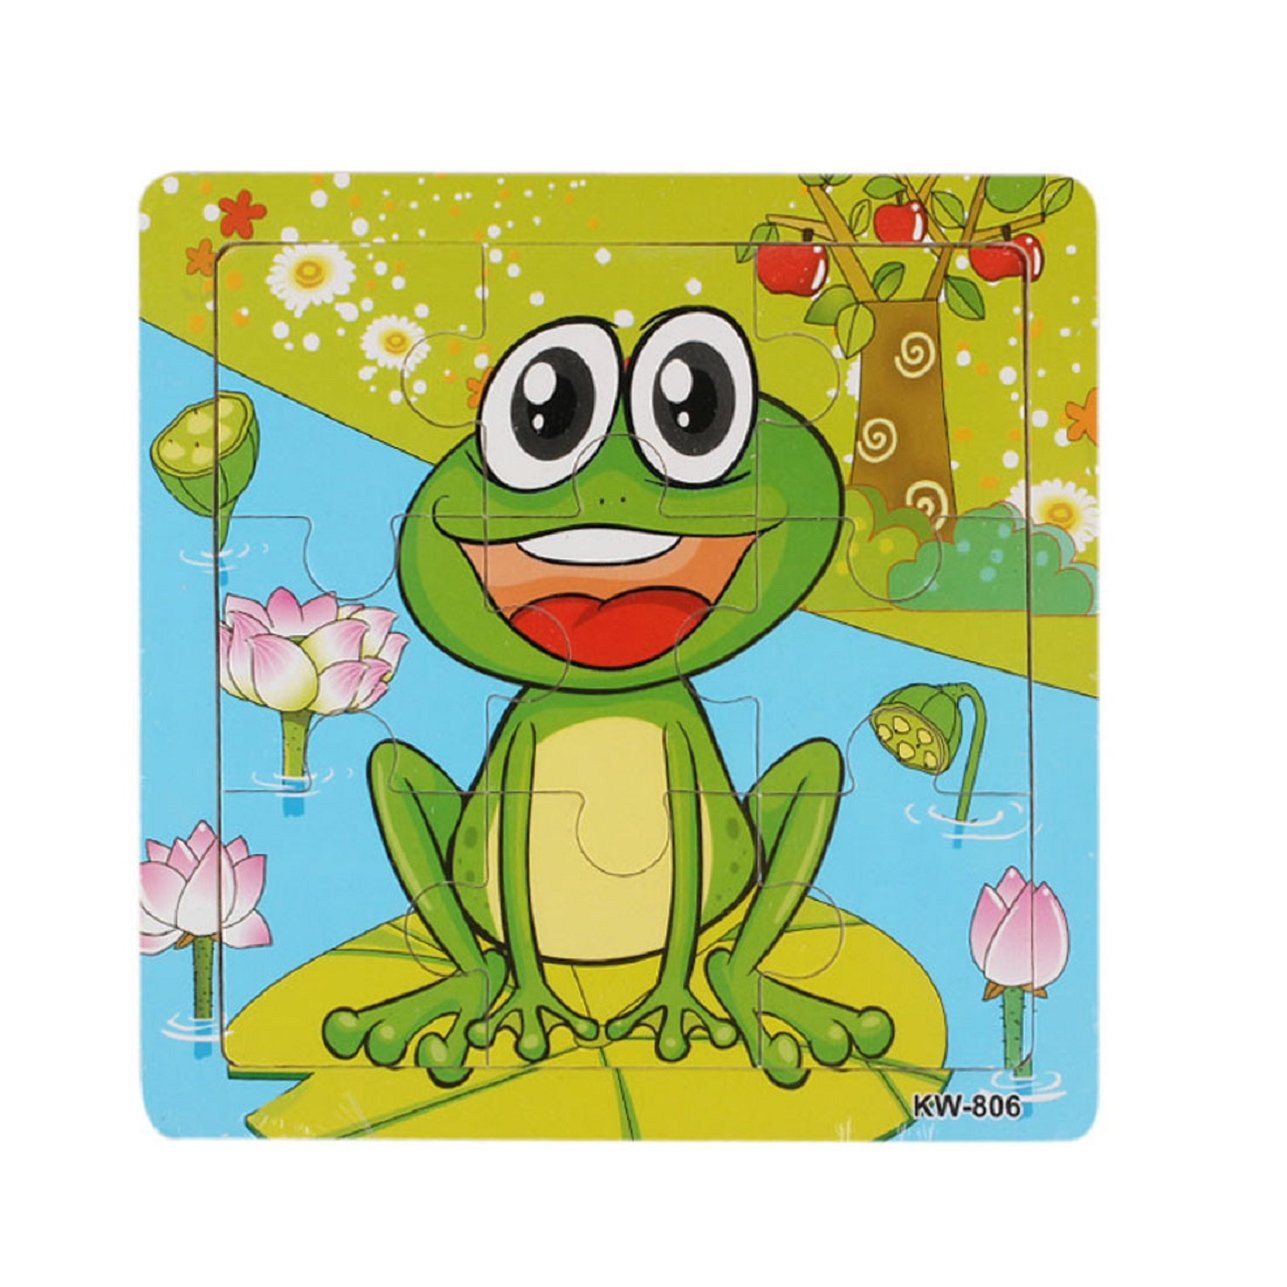 Sandistore Wooden Jigsaw Toys For Kids Education And Learning Puzzles Toys(Frog)